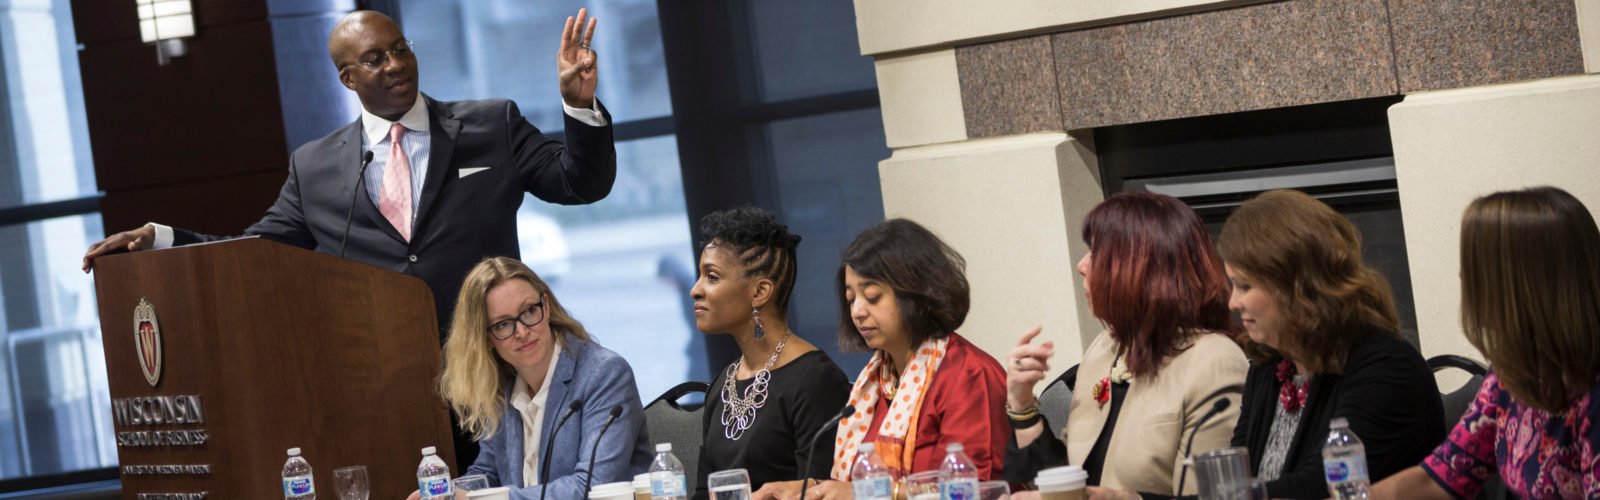 Eddie Turner, the first male to moderate the UW-Madison/National Diversity Council Annual Women in Leadership Symposium, gets ready to start the session.